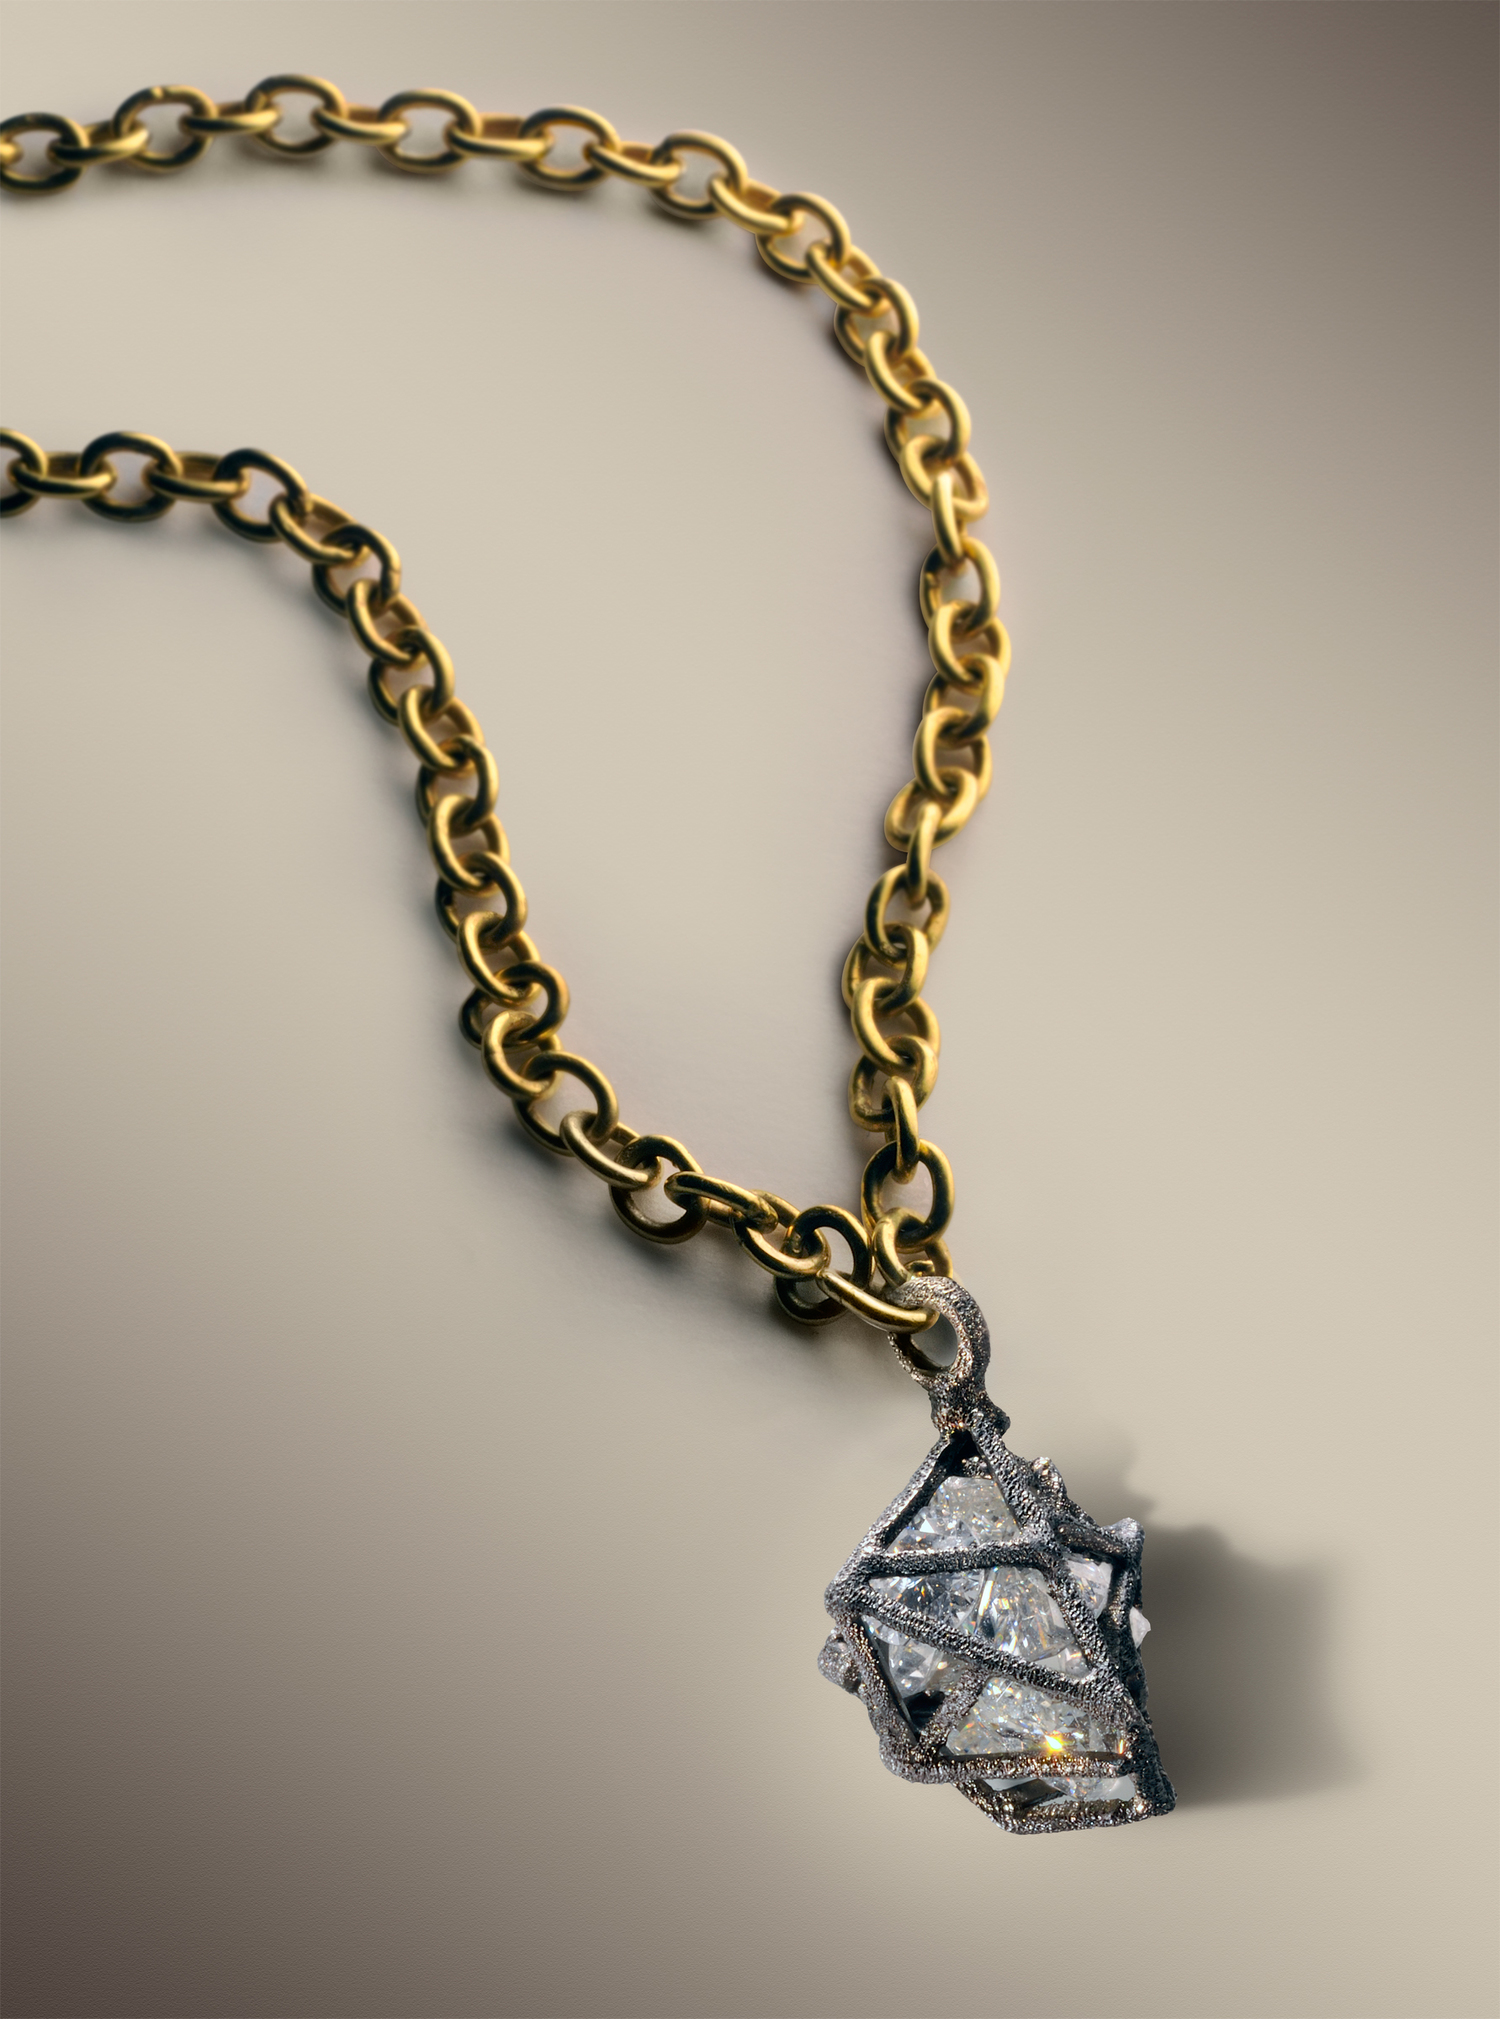 Caged+diamond+necklace_TAP_by_Todd_Pownell.jpg